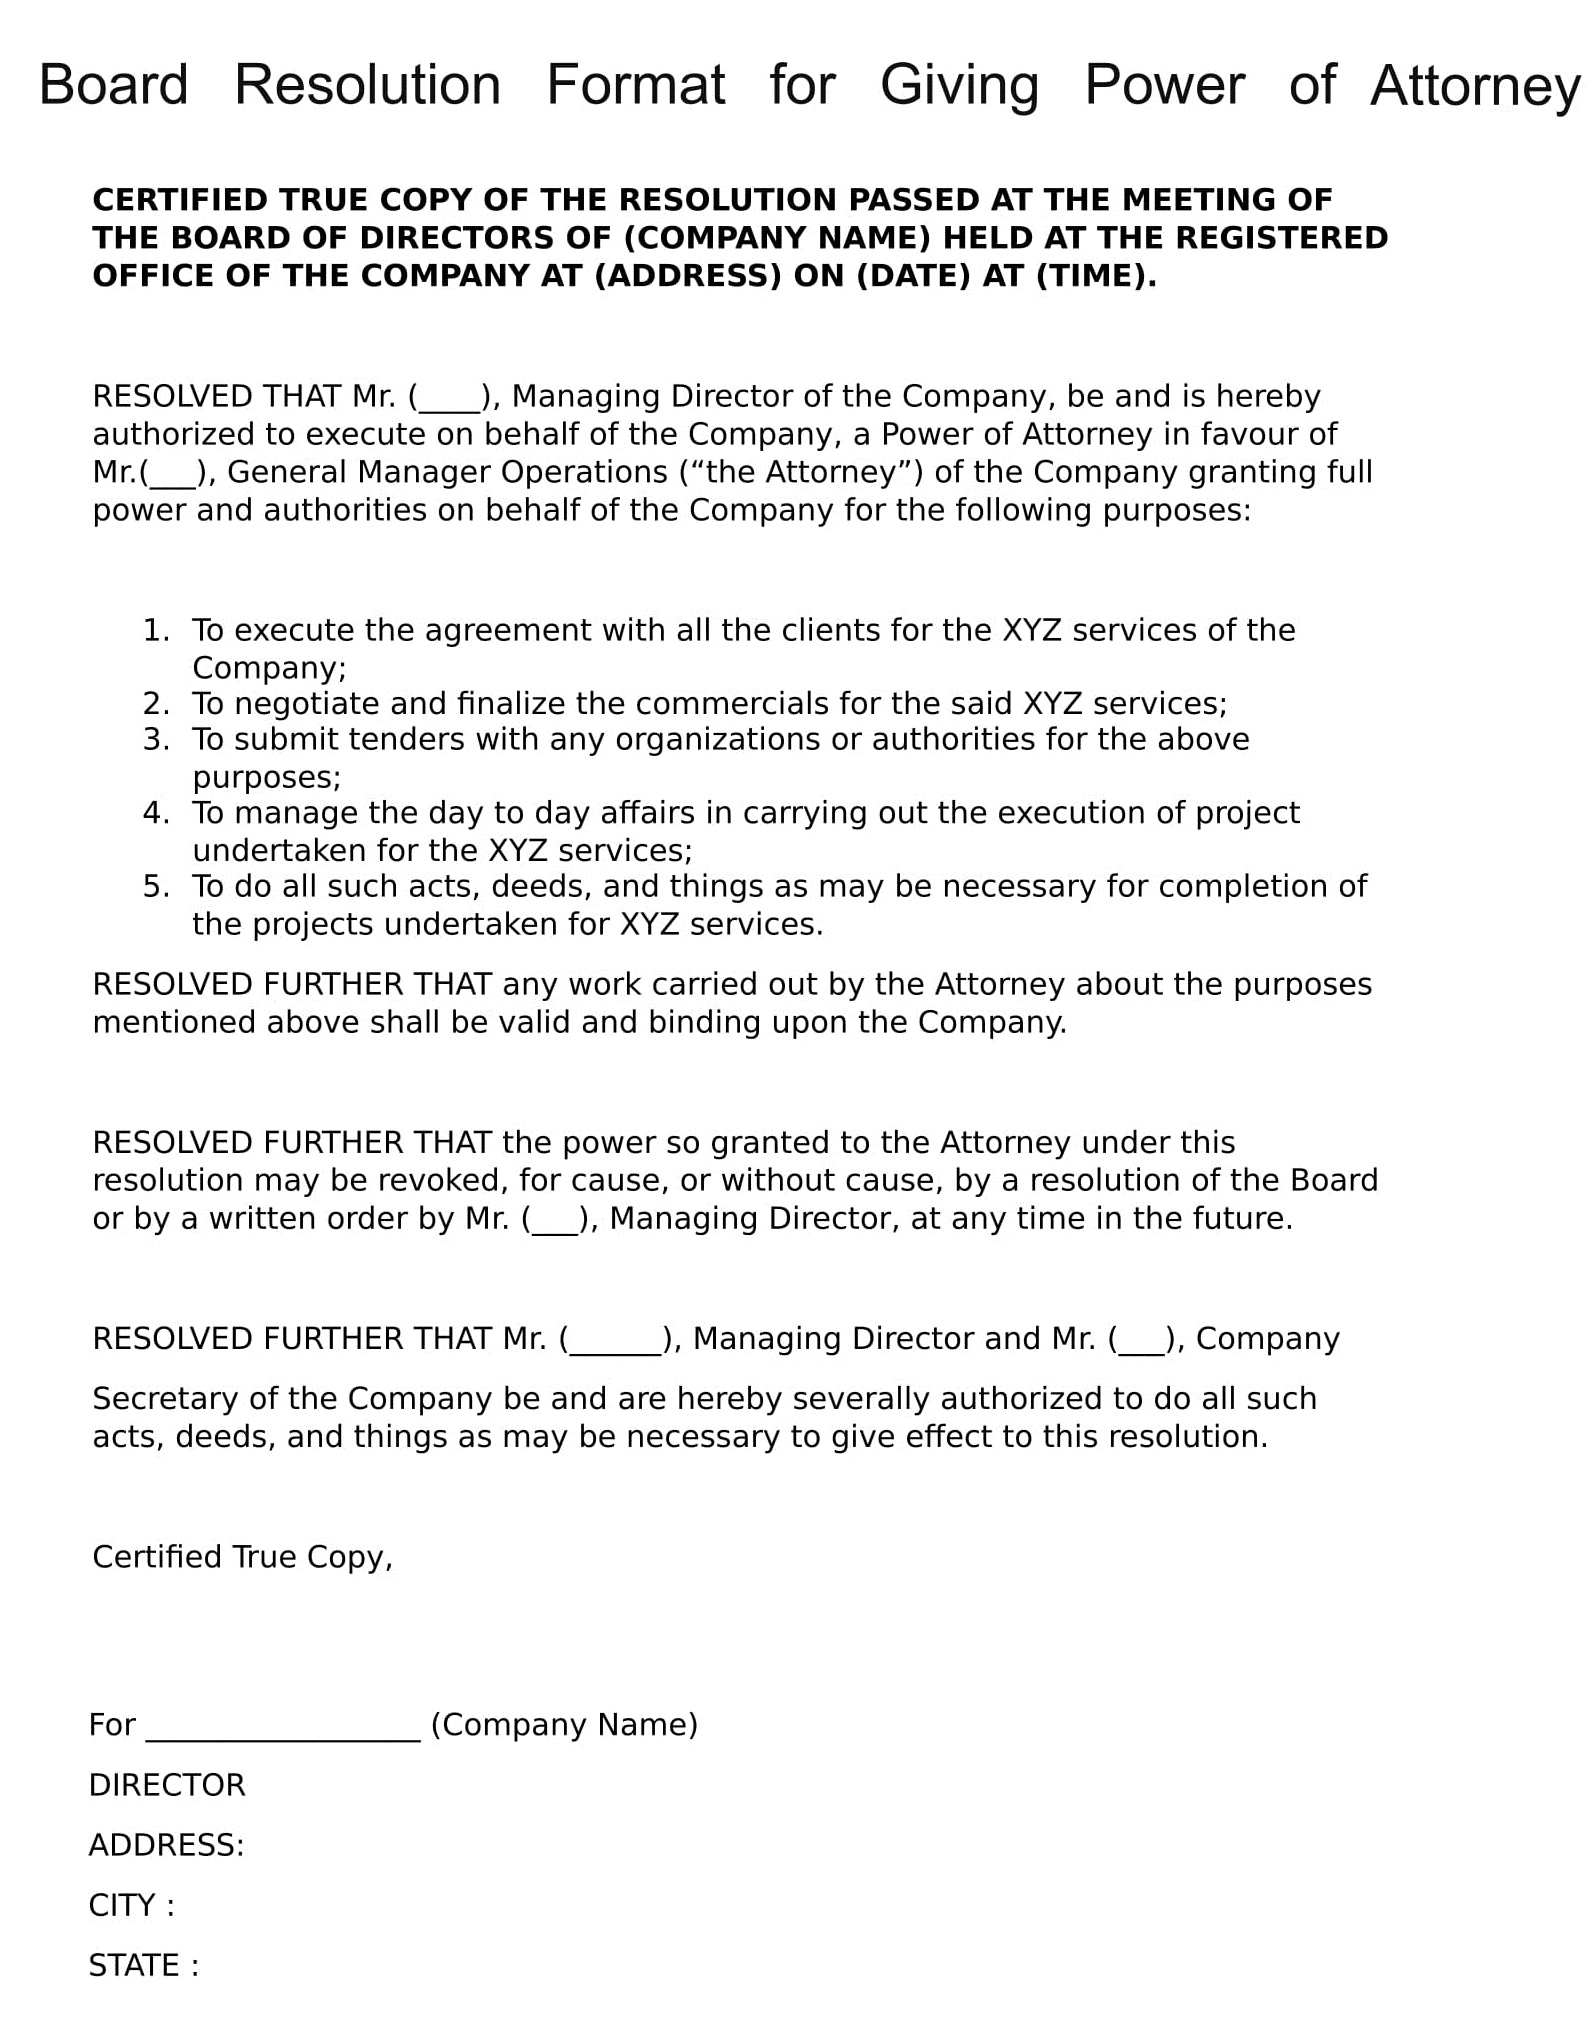 board resolution template singapore - board resolution format for giving power of attorney